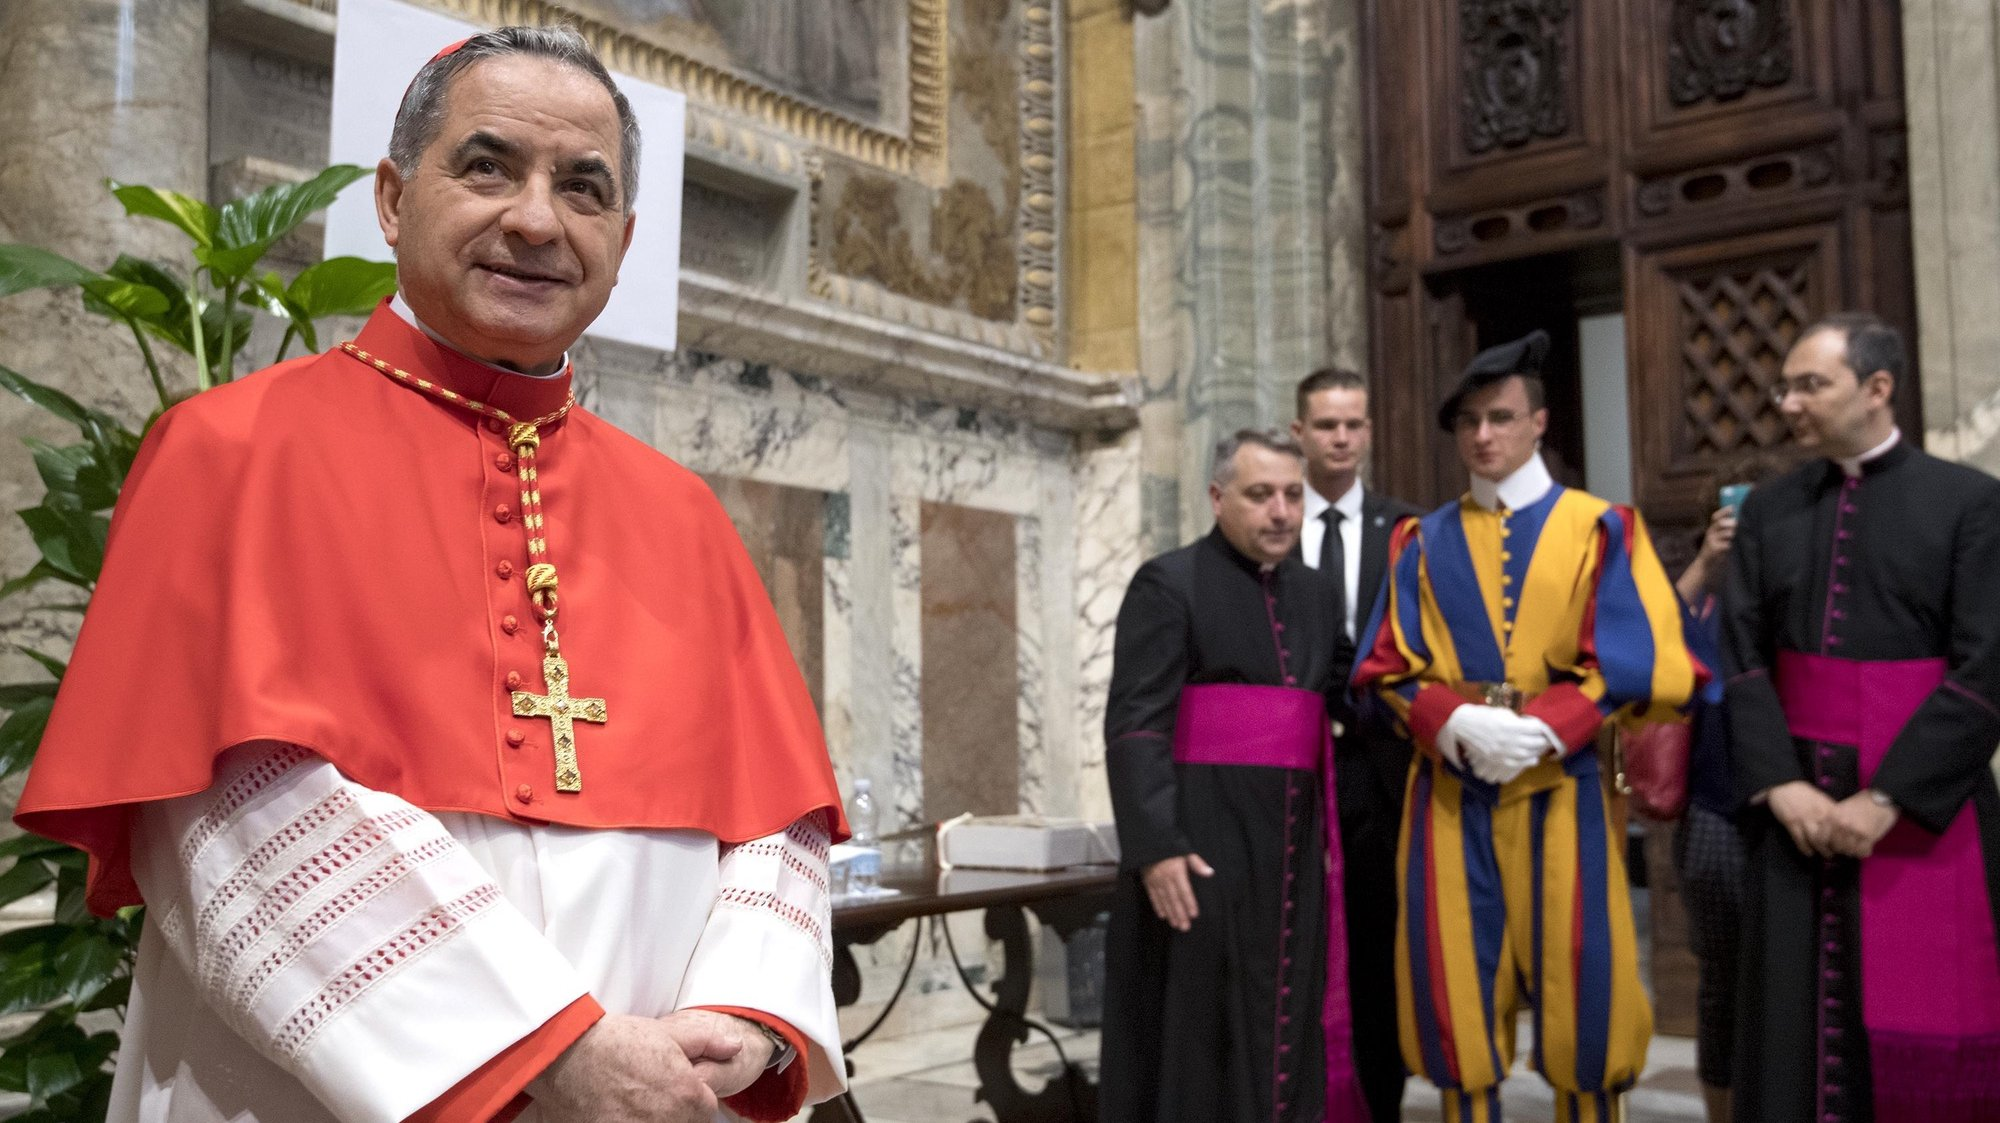 epa06848346 Substitute of the Vatican Secretary of State and Special Delegate for the Sovereign Military Order of Malta from Italy, Giovanni Angelo Becciu (L) poses for photographers after the Pope Francis' Ordinary Public Consistory mass to create 14 new cardinals from 11 countries in Saint Peters Basilica at the Vatican, 28 June 2018. The cardinals-designate are from Bolivia, Iraq, Italy, Japan, Pakistan, Poland, Portugal, Peru, Madagascar, Mexico and Spain.  EPA/CLAUDIO PERI